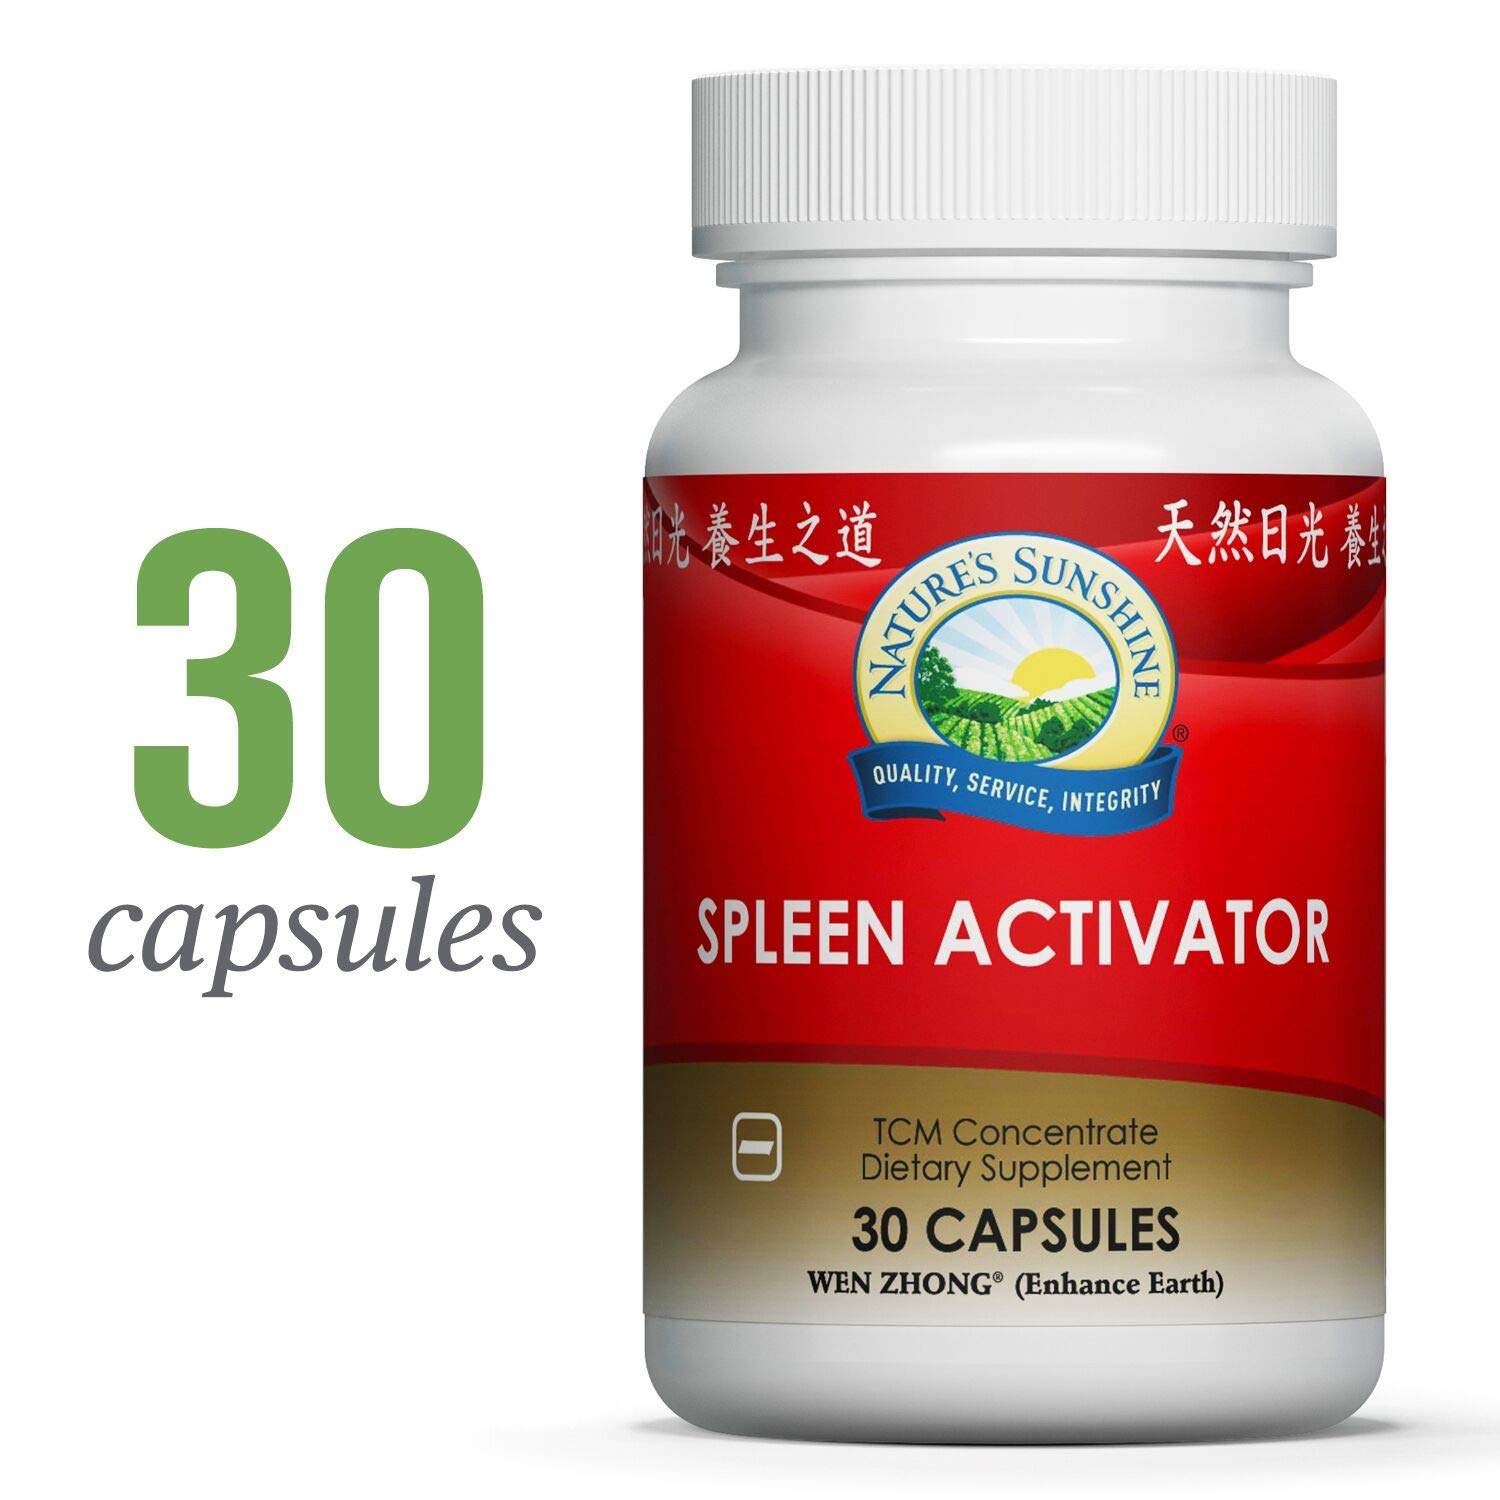 Nature s Sunshine Spleen Activator, TCM Concentrate, 30 Capsules Chinese Herbs Helps Support Digestion, Improve Circulation, and Increase Immunity